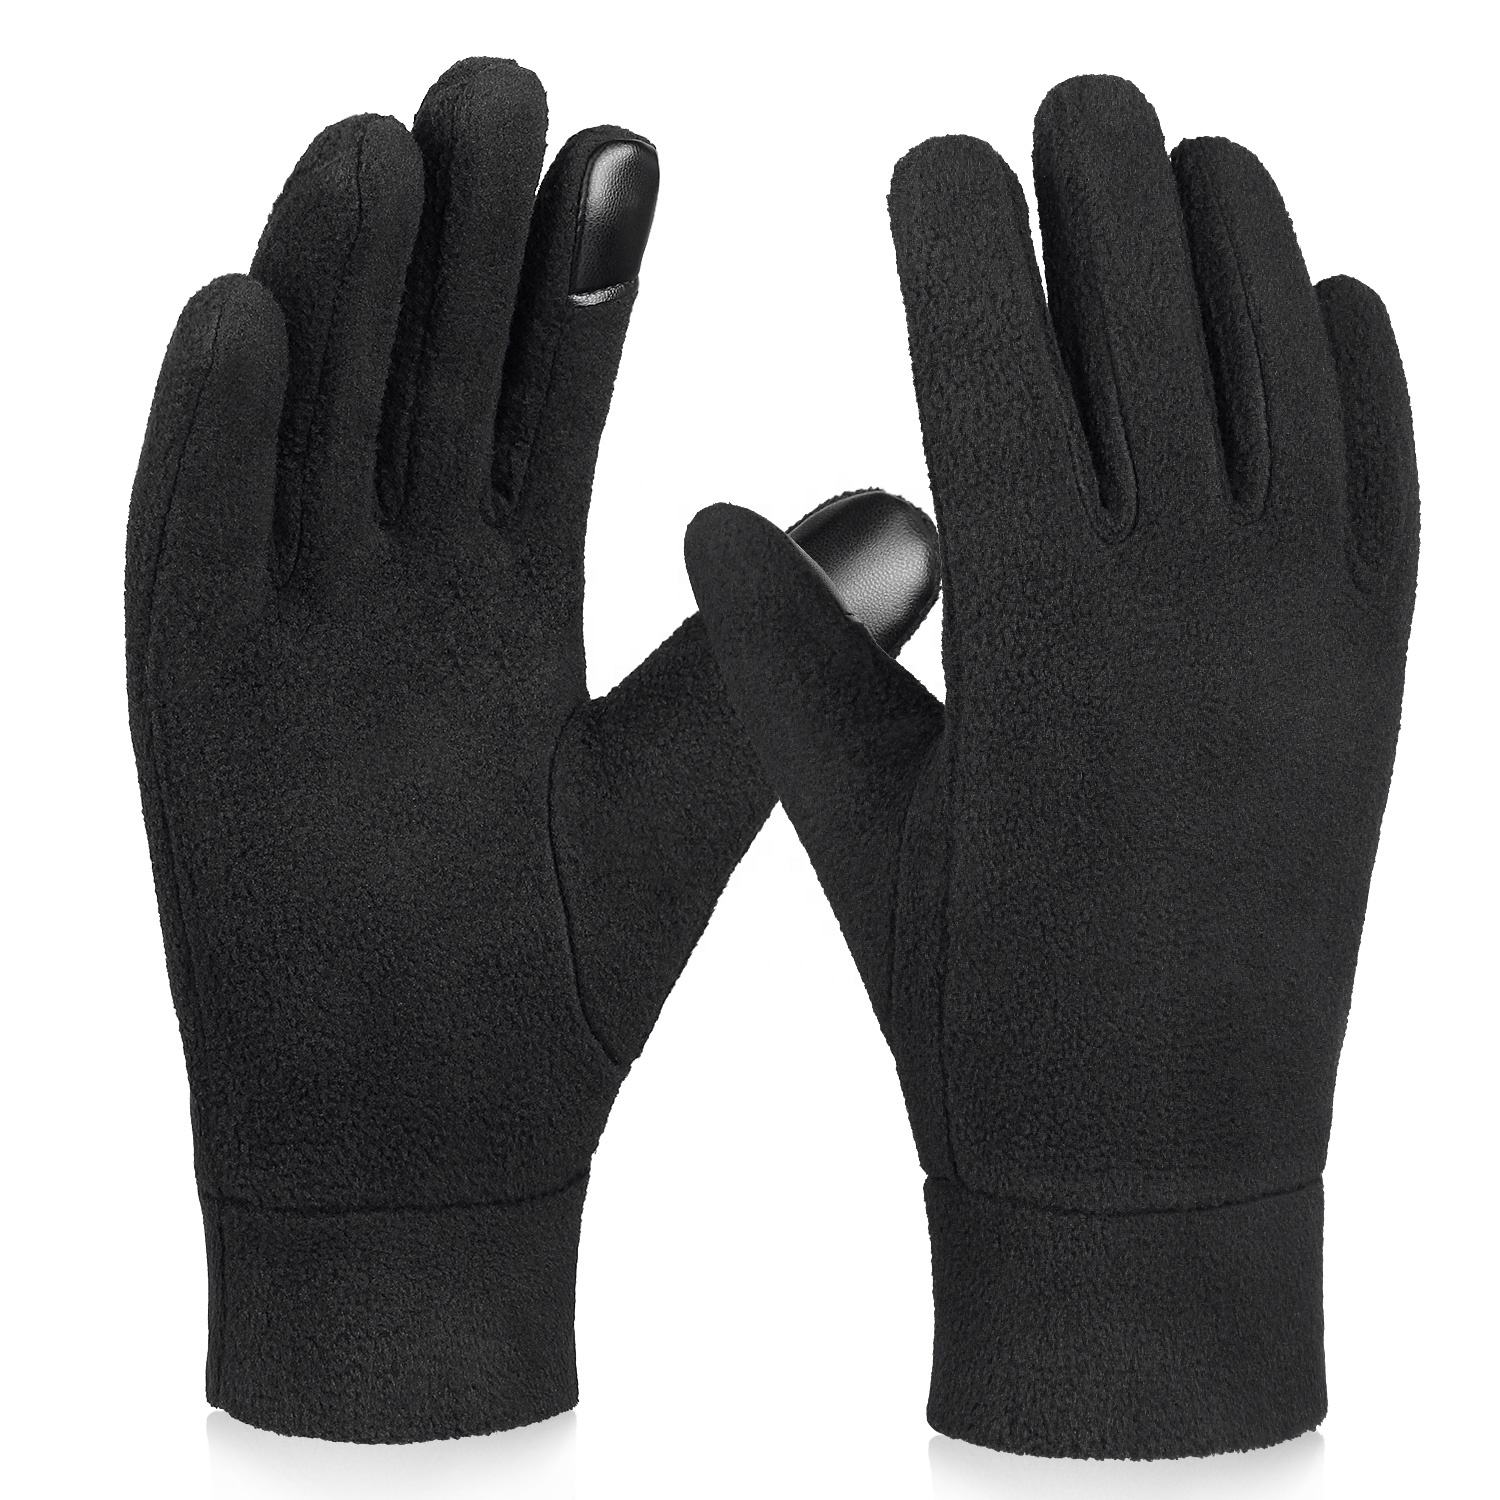 Ozero Black Touch Screen Polar Fleece Gloves Lightweight Running Winter Gloves Unisex for Men and Women .